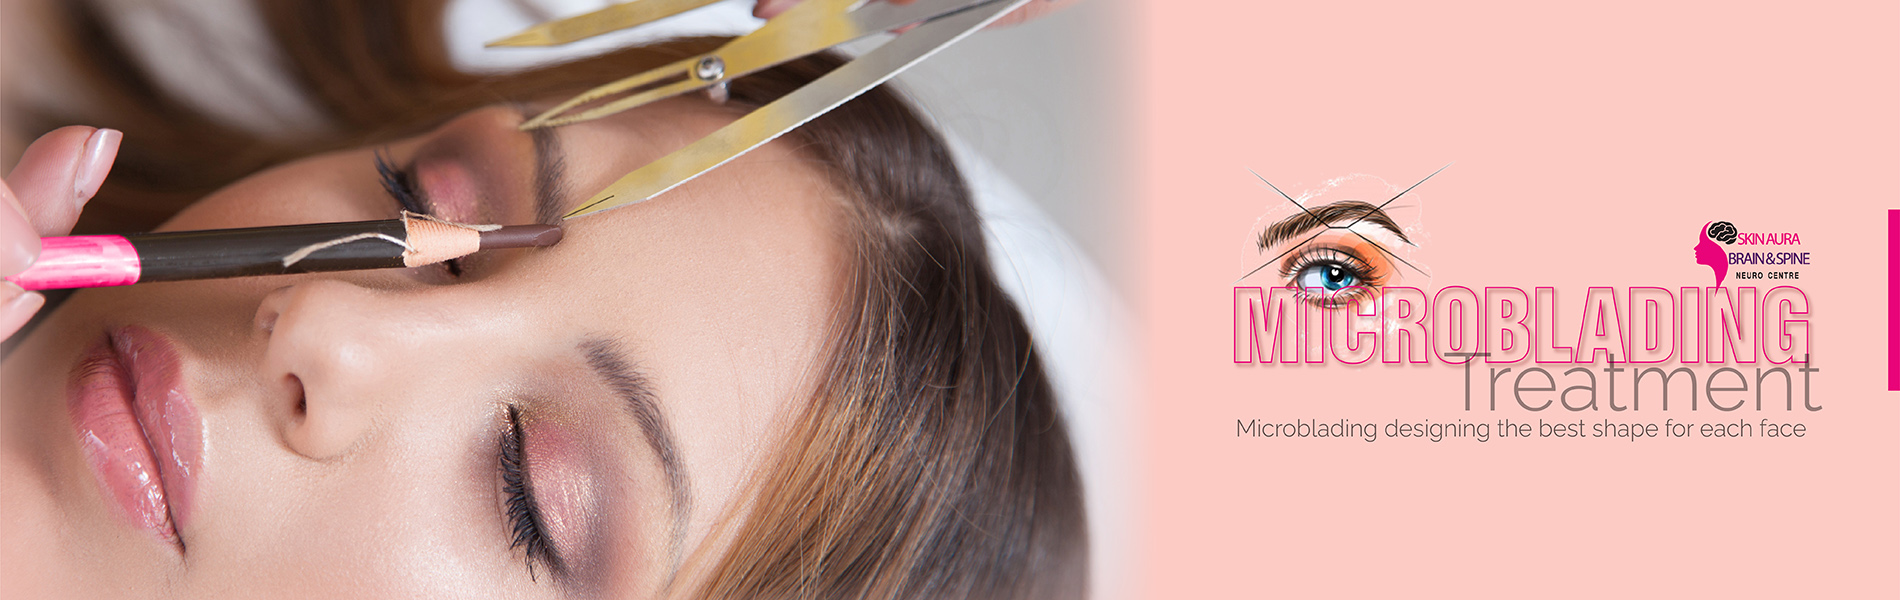 microblading eyebrows treatment in Gurgaon